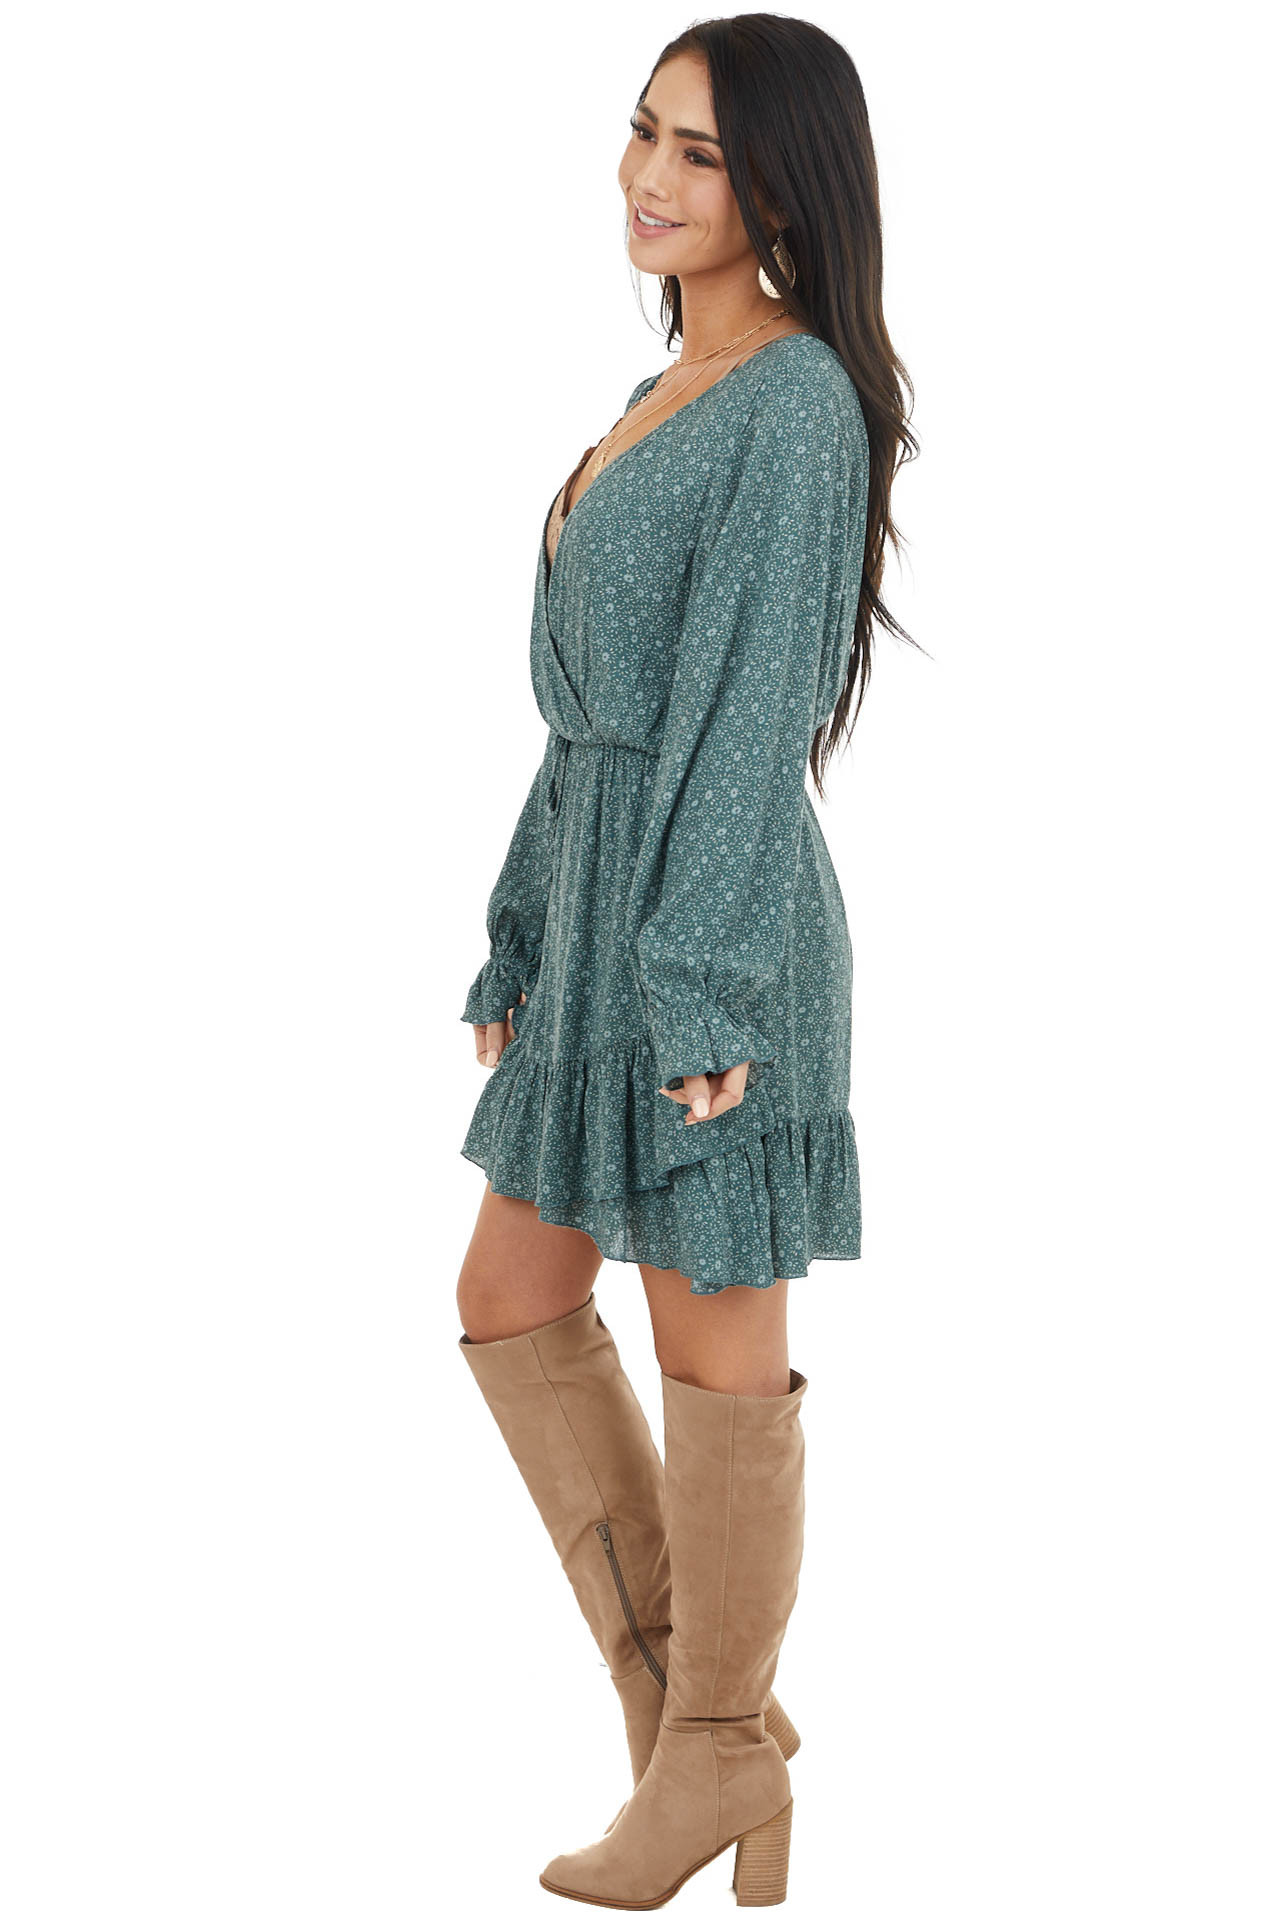 Pine Green Floral Print Long Sleeve Dress with Ruffle Detail